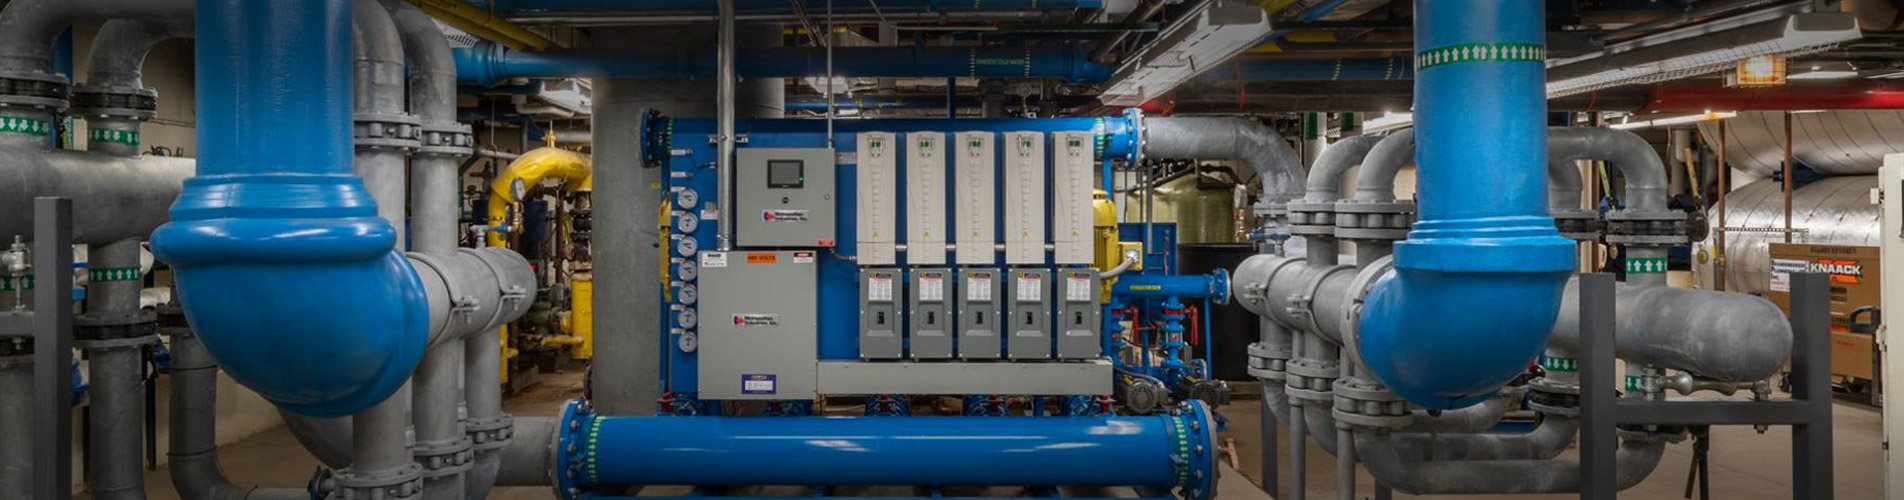 Water & Wastewater Control System Integration